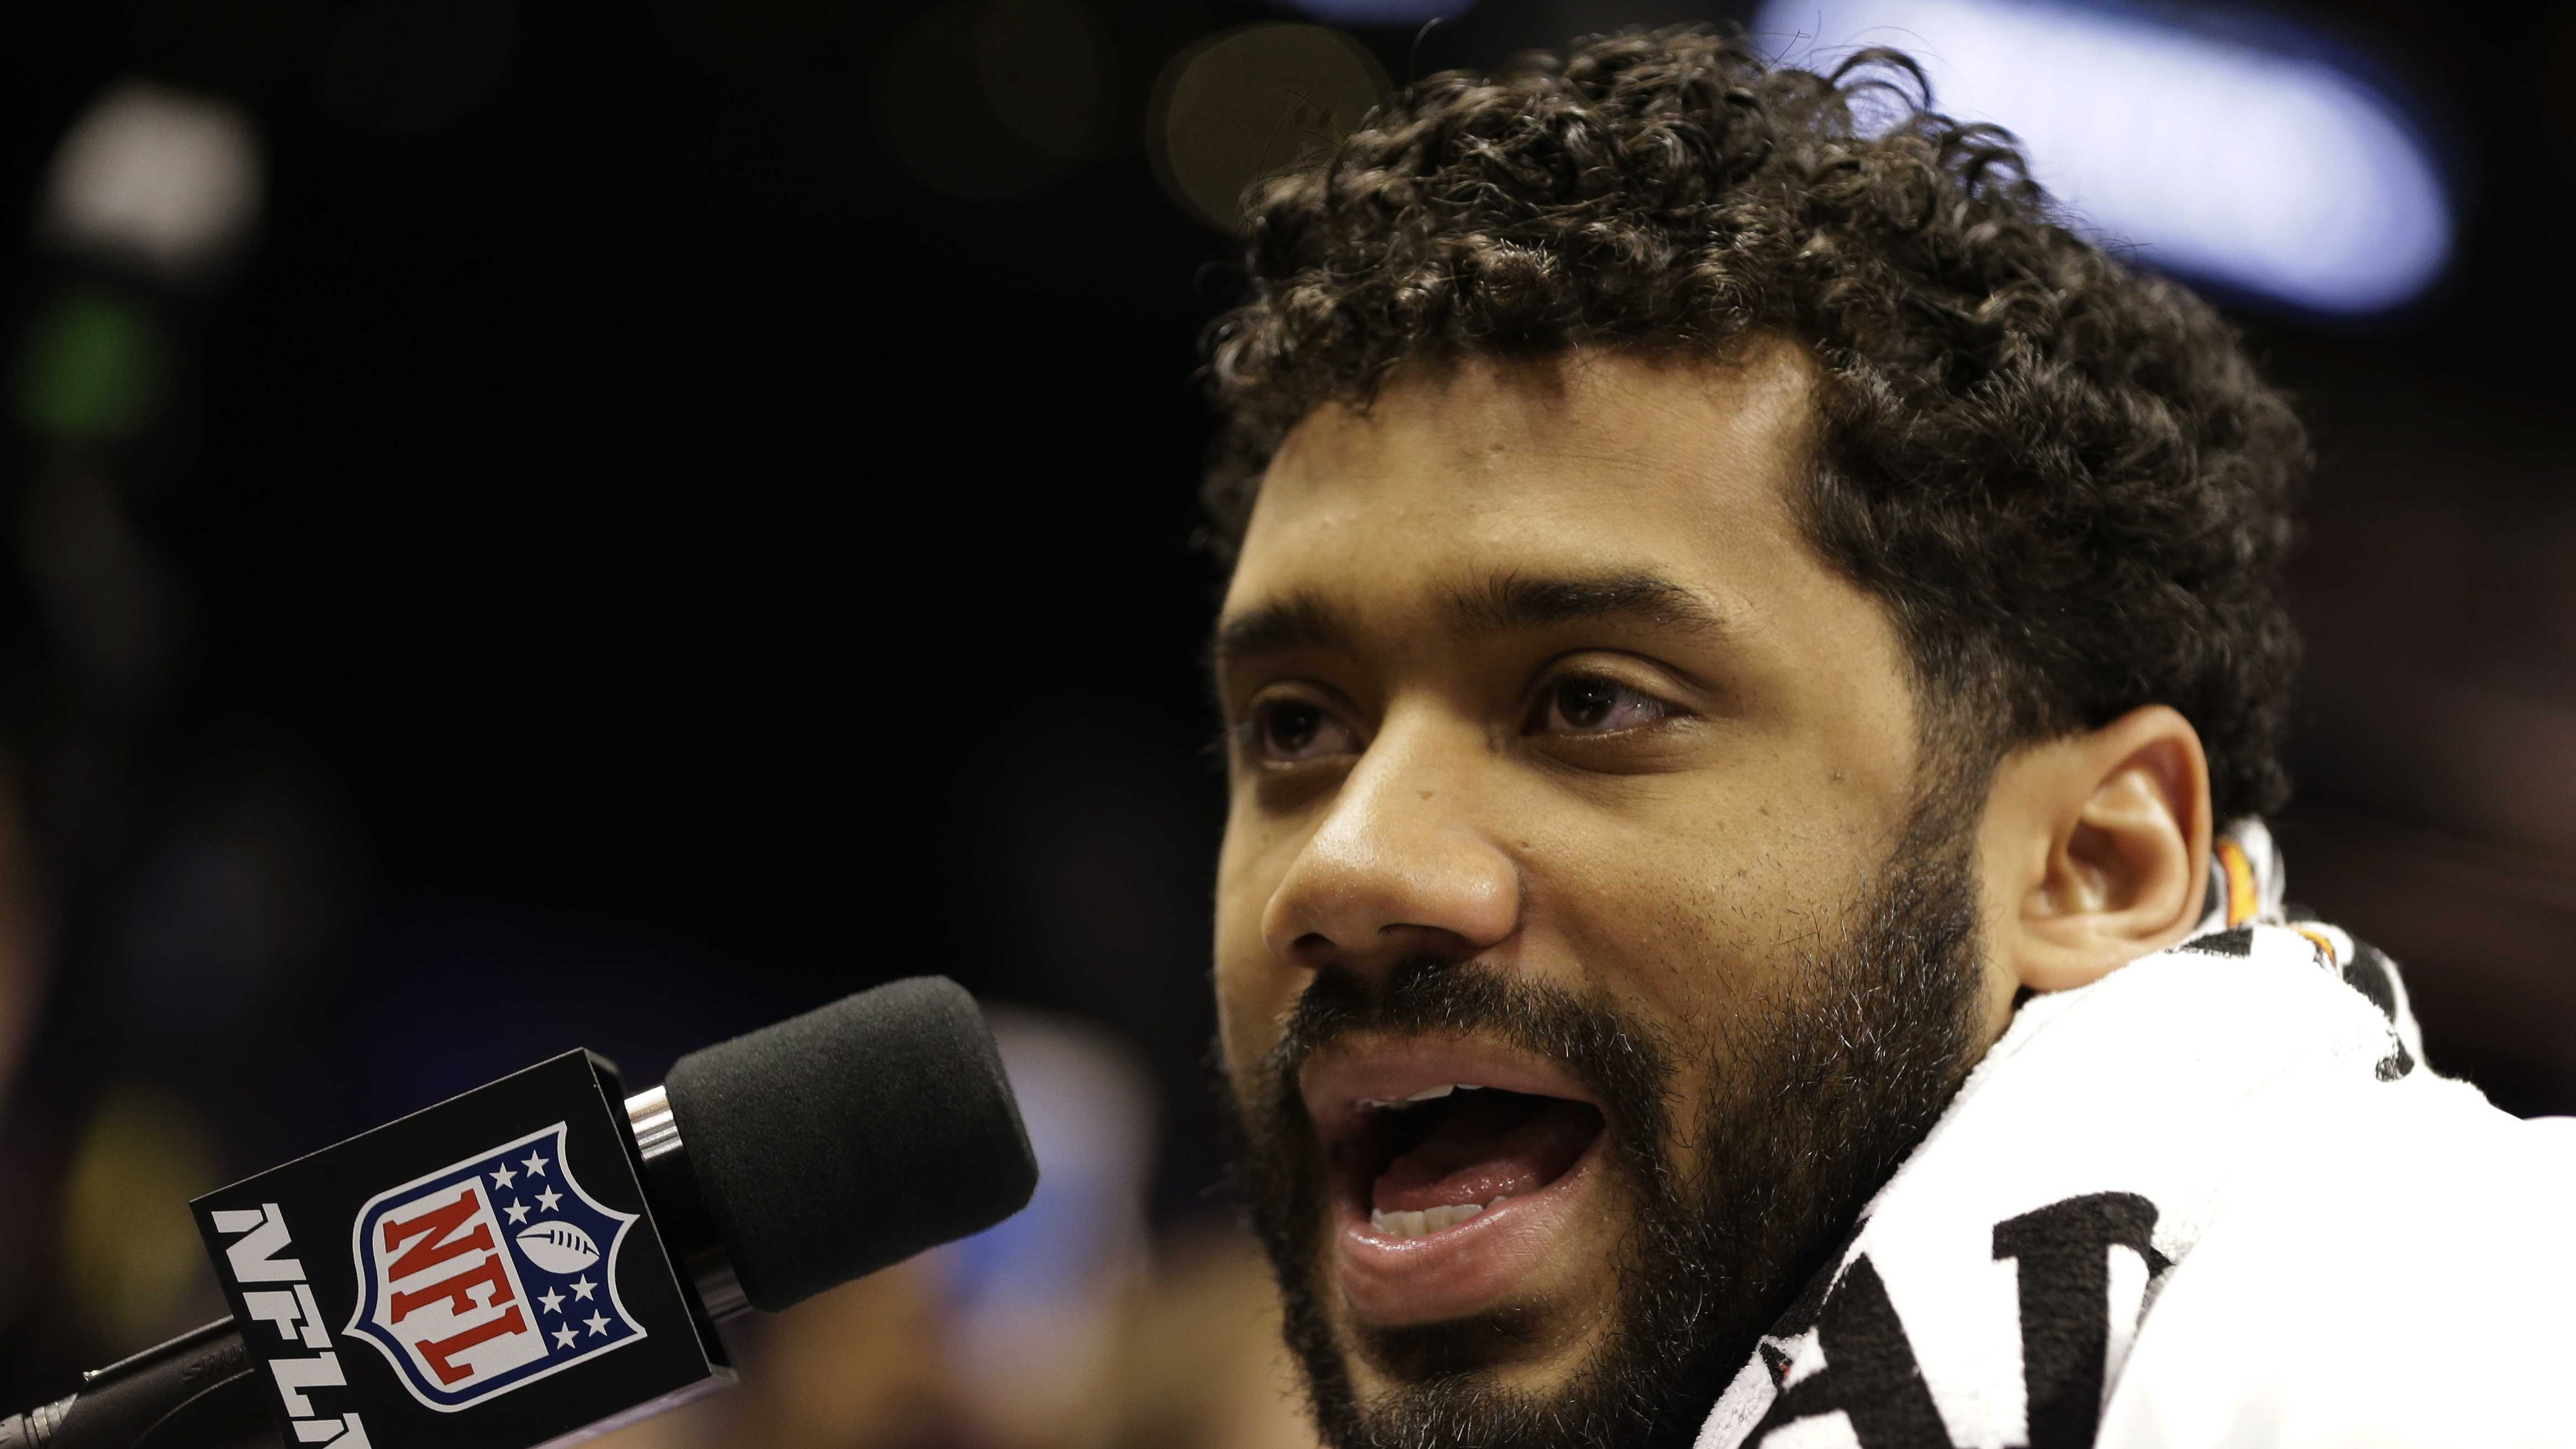 Seattle Seahawks' Russell Wilson answers questions during media day for NFL Super Bowl XLIX football game Tuesday, Jan. 27, 2015, in Phoenix.